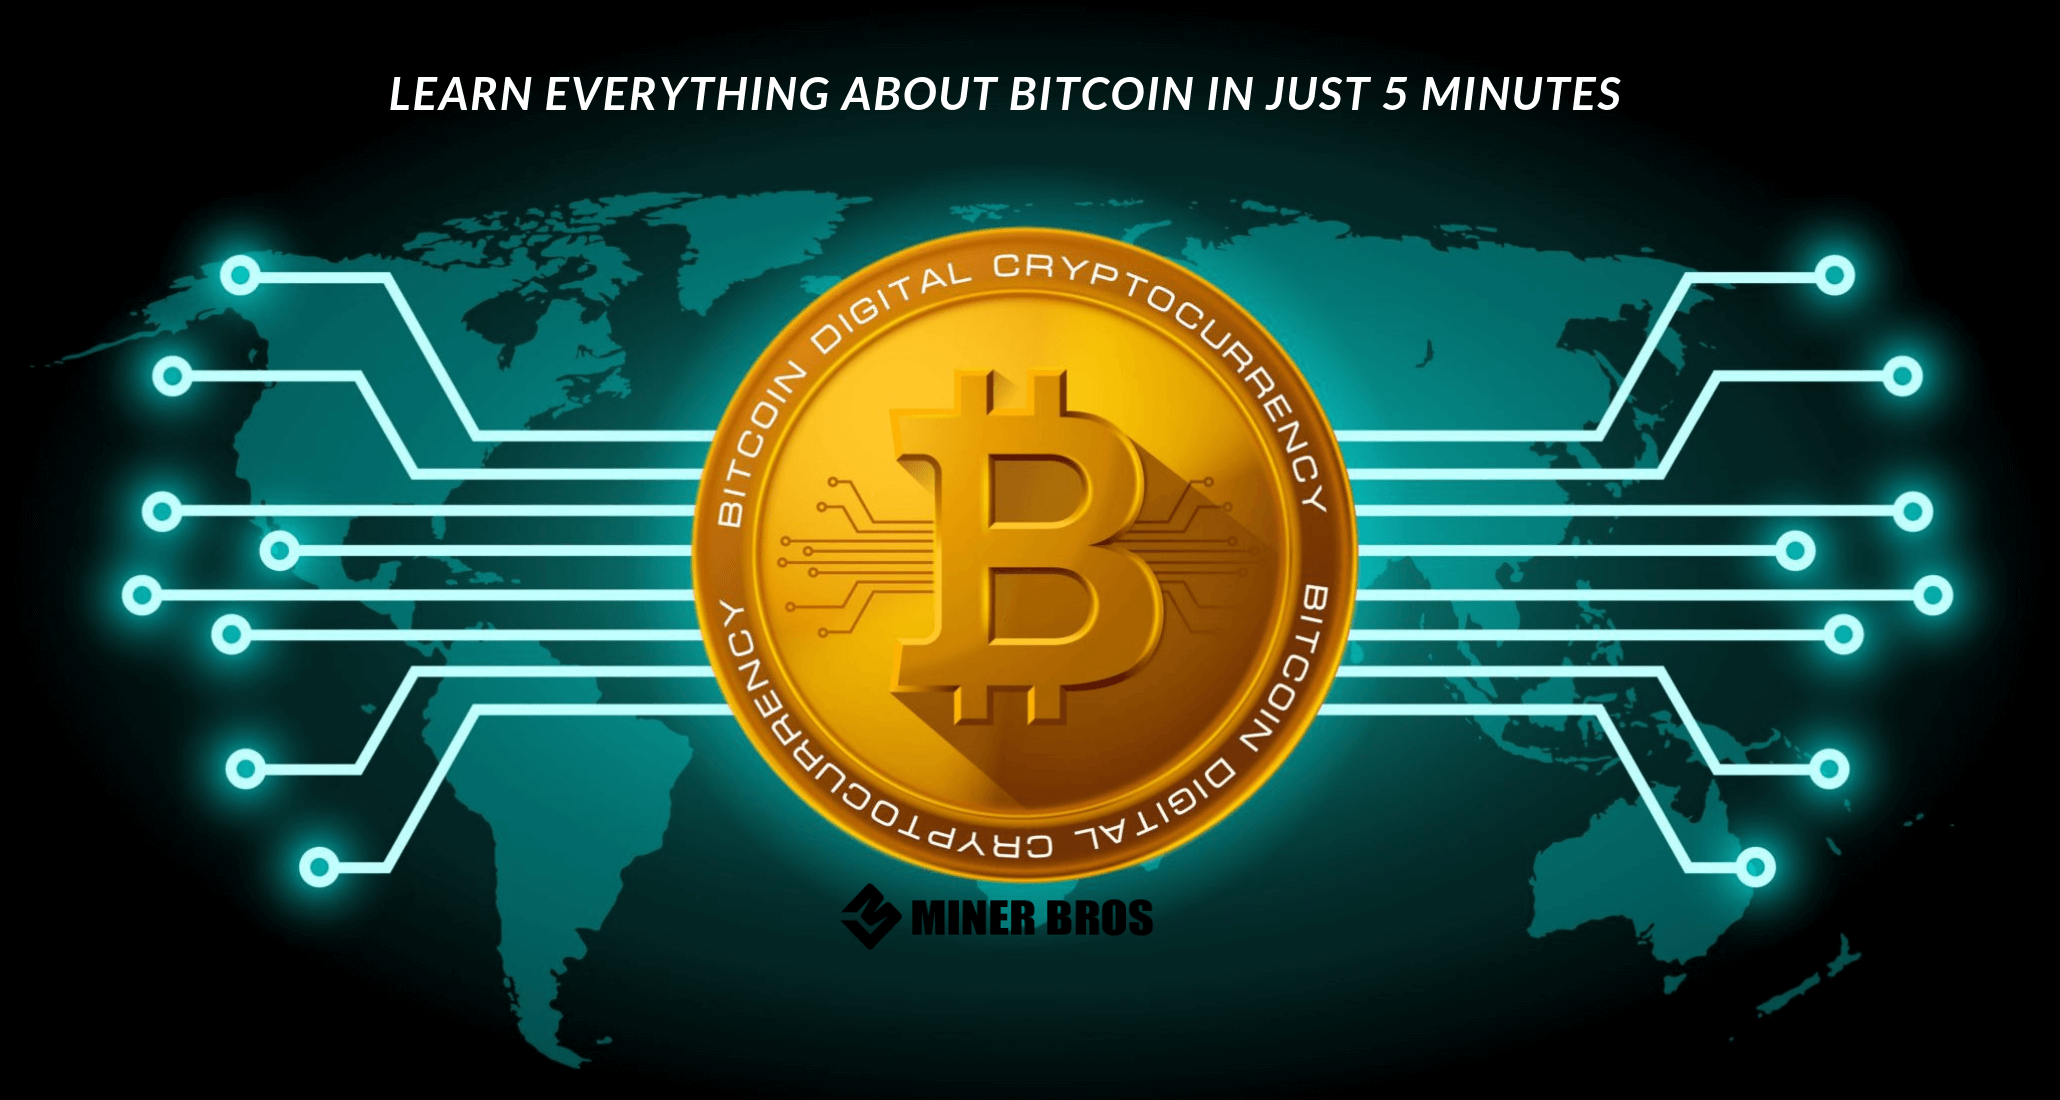 Learn Everything About Bitcoin in Just 5 Minutes